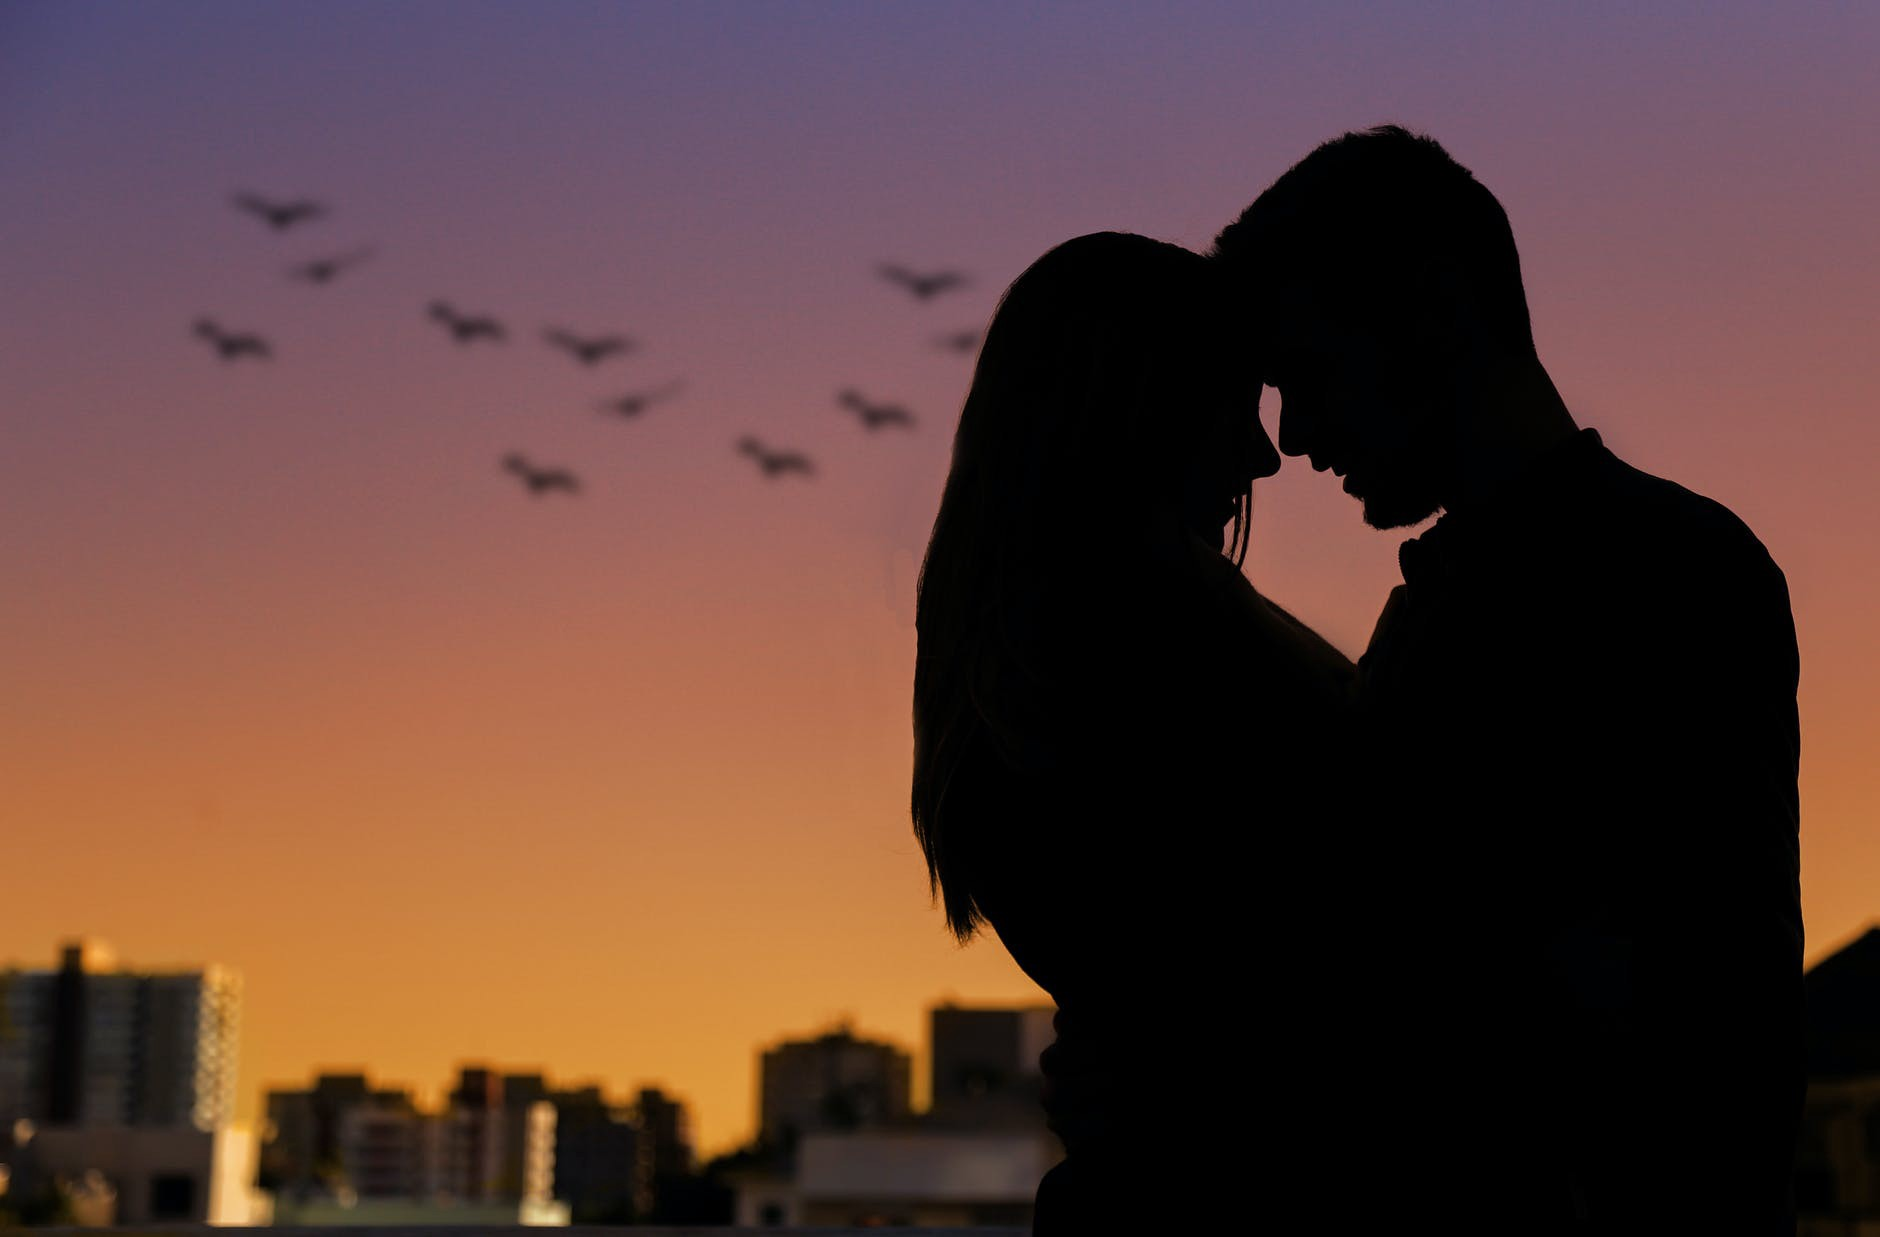 Man and woman looking at each other during a beautiful sunset